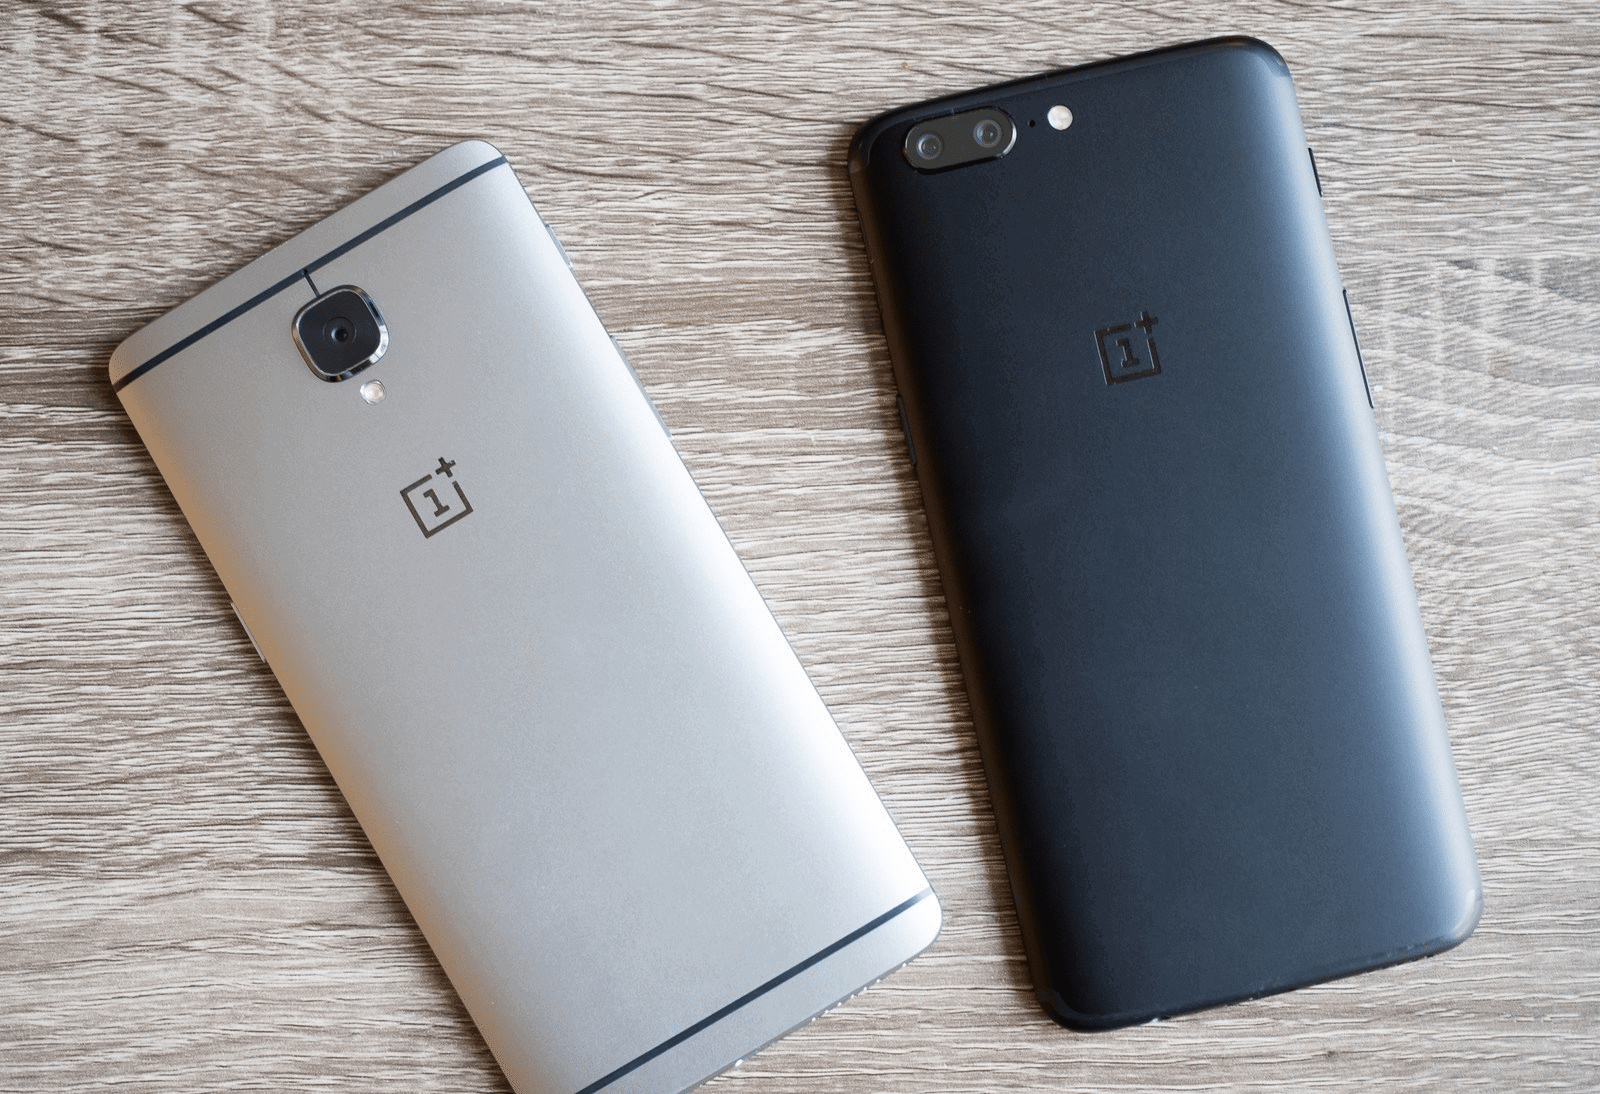 OnePlus 3 and 3T updated Oxygen OS 4.5.0 official update